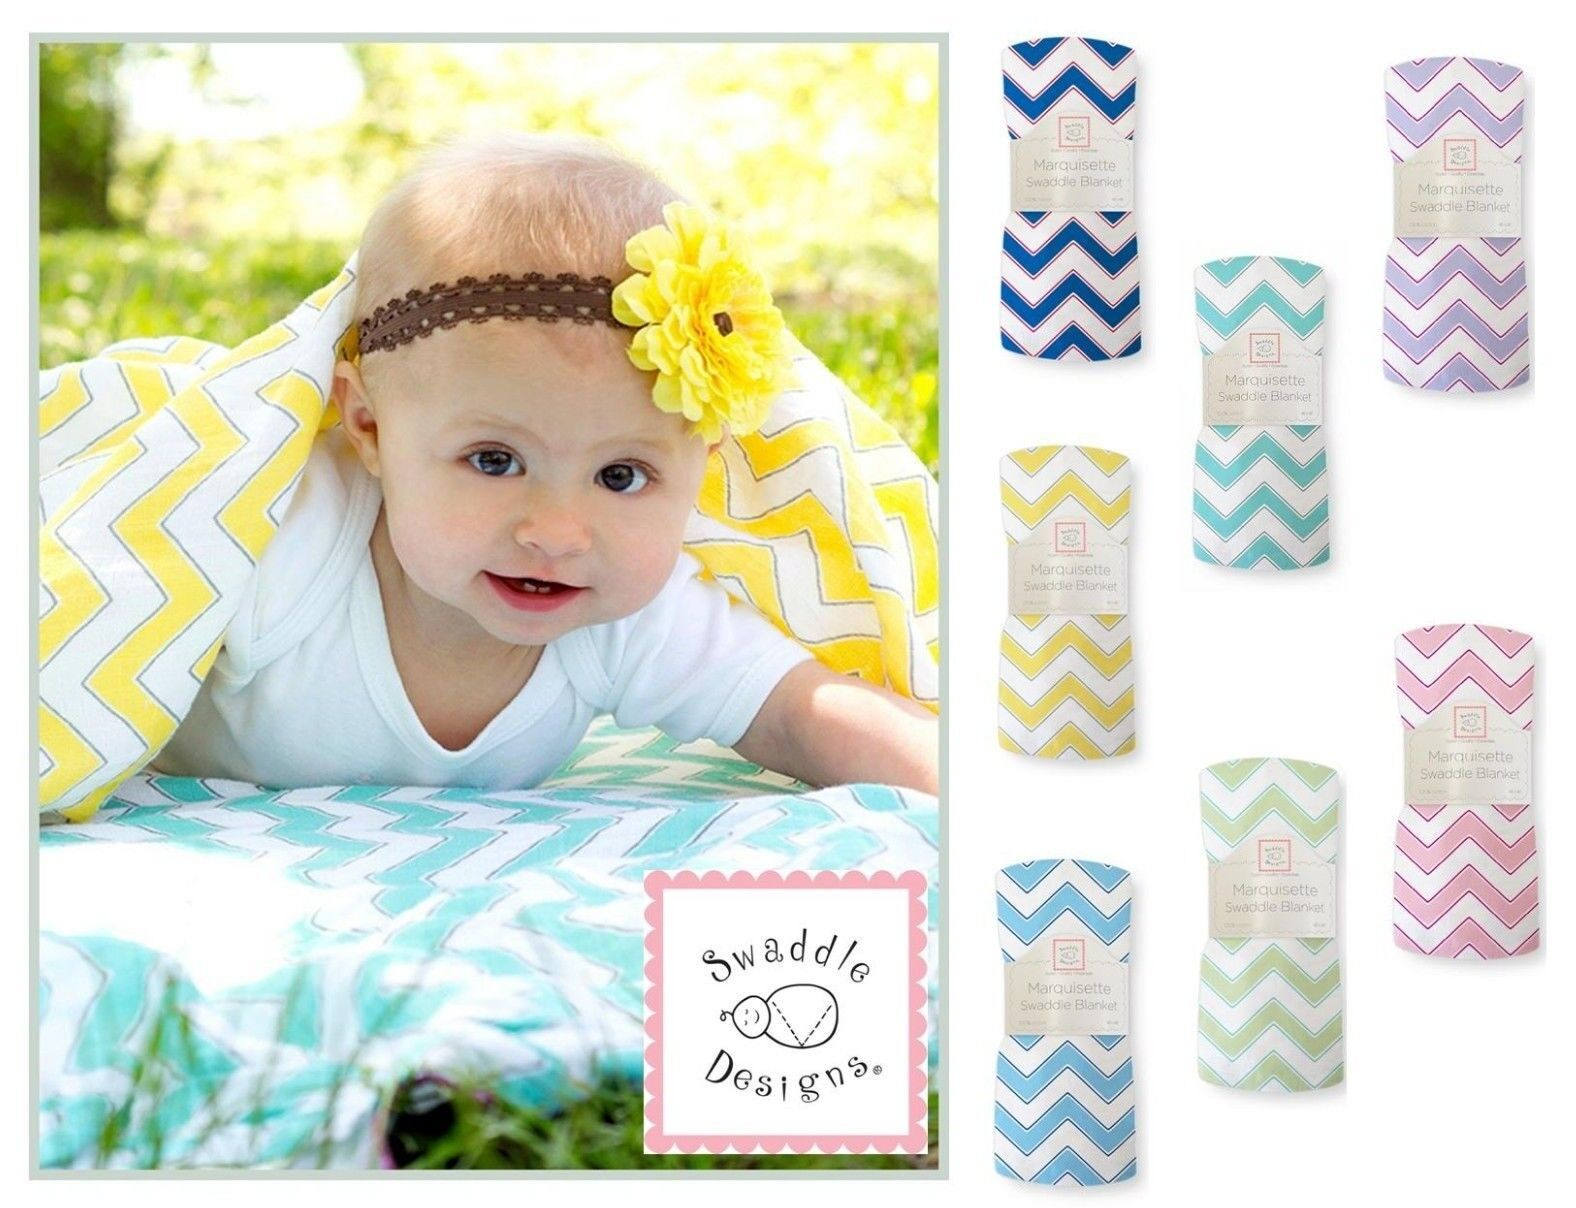 SwaddleDesigns Chevron Marquisette Swaddle Blanket softer th